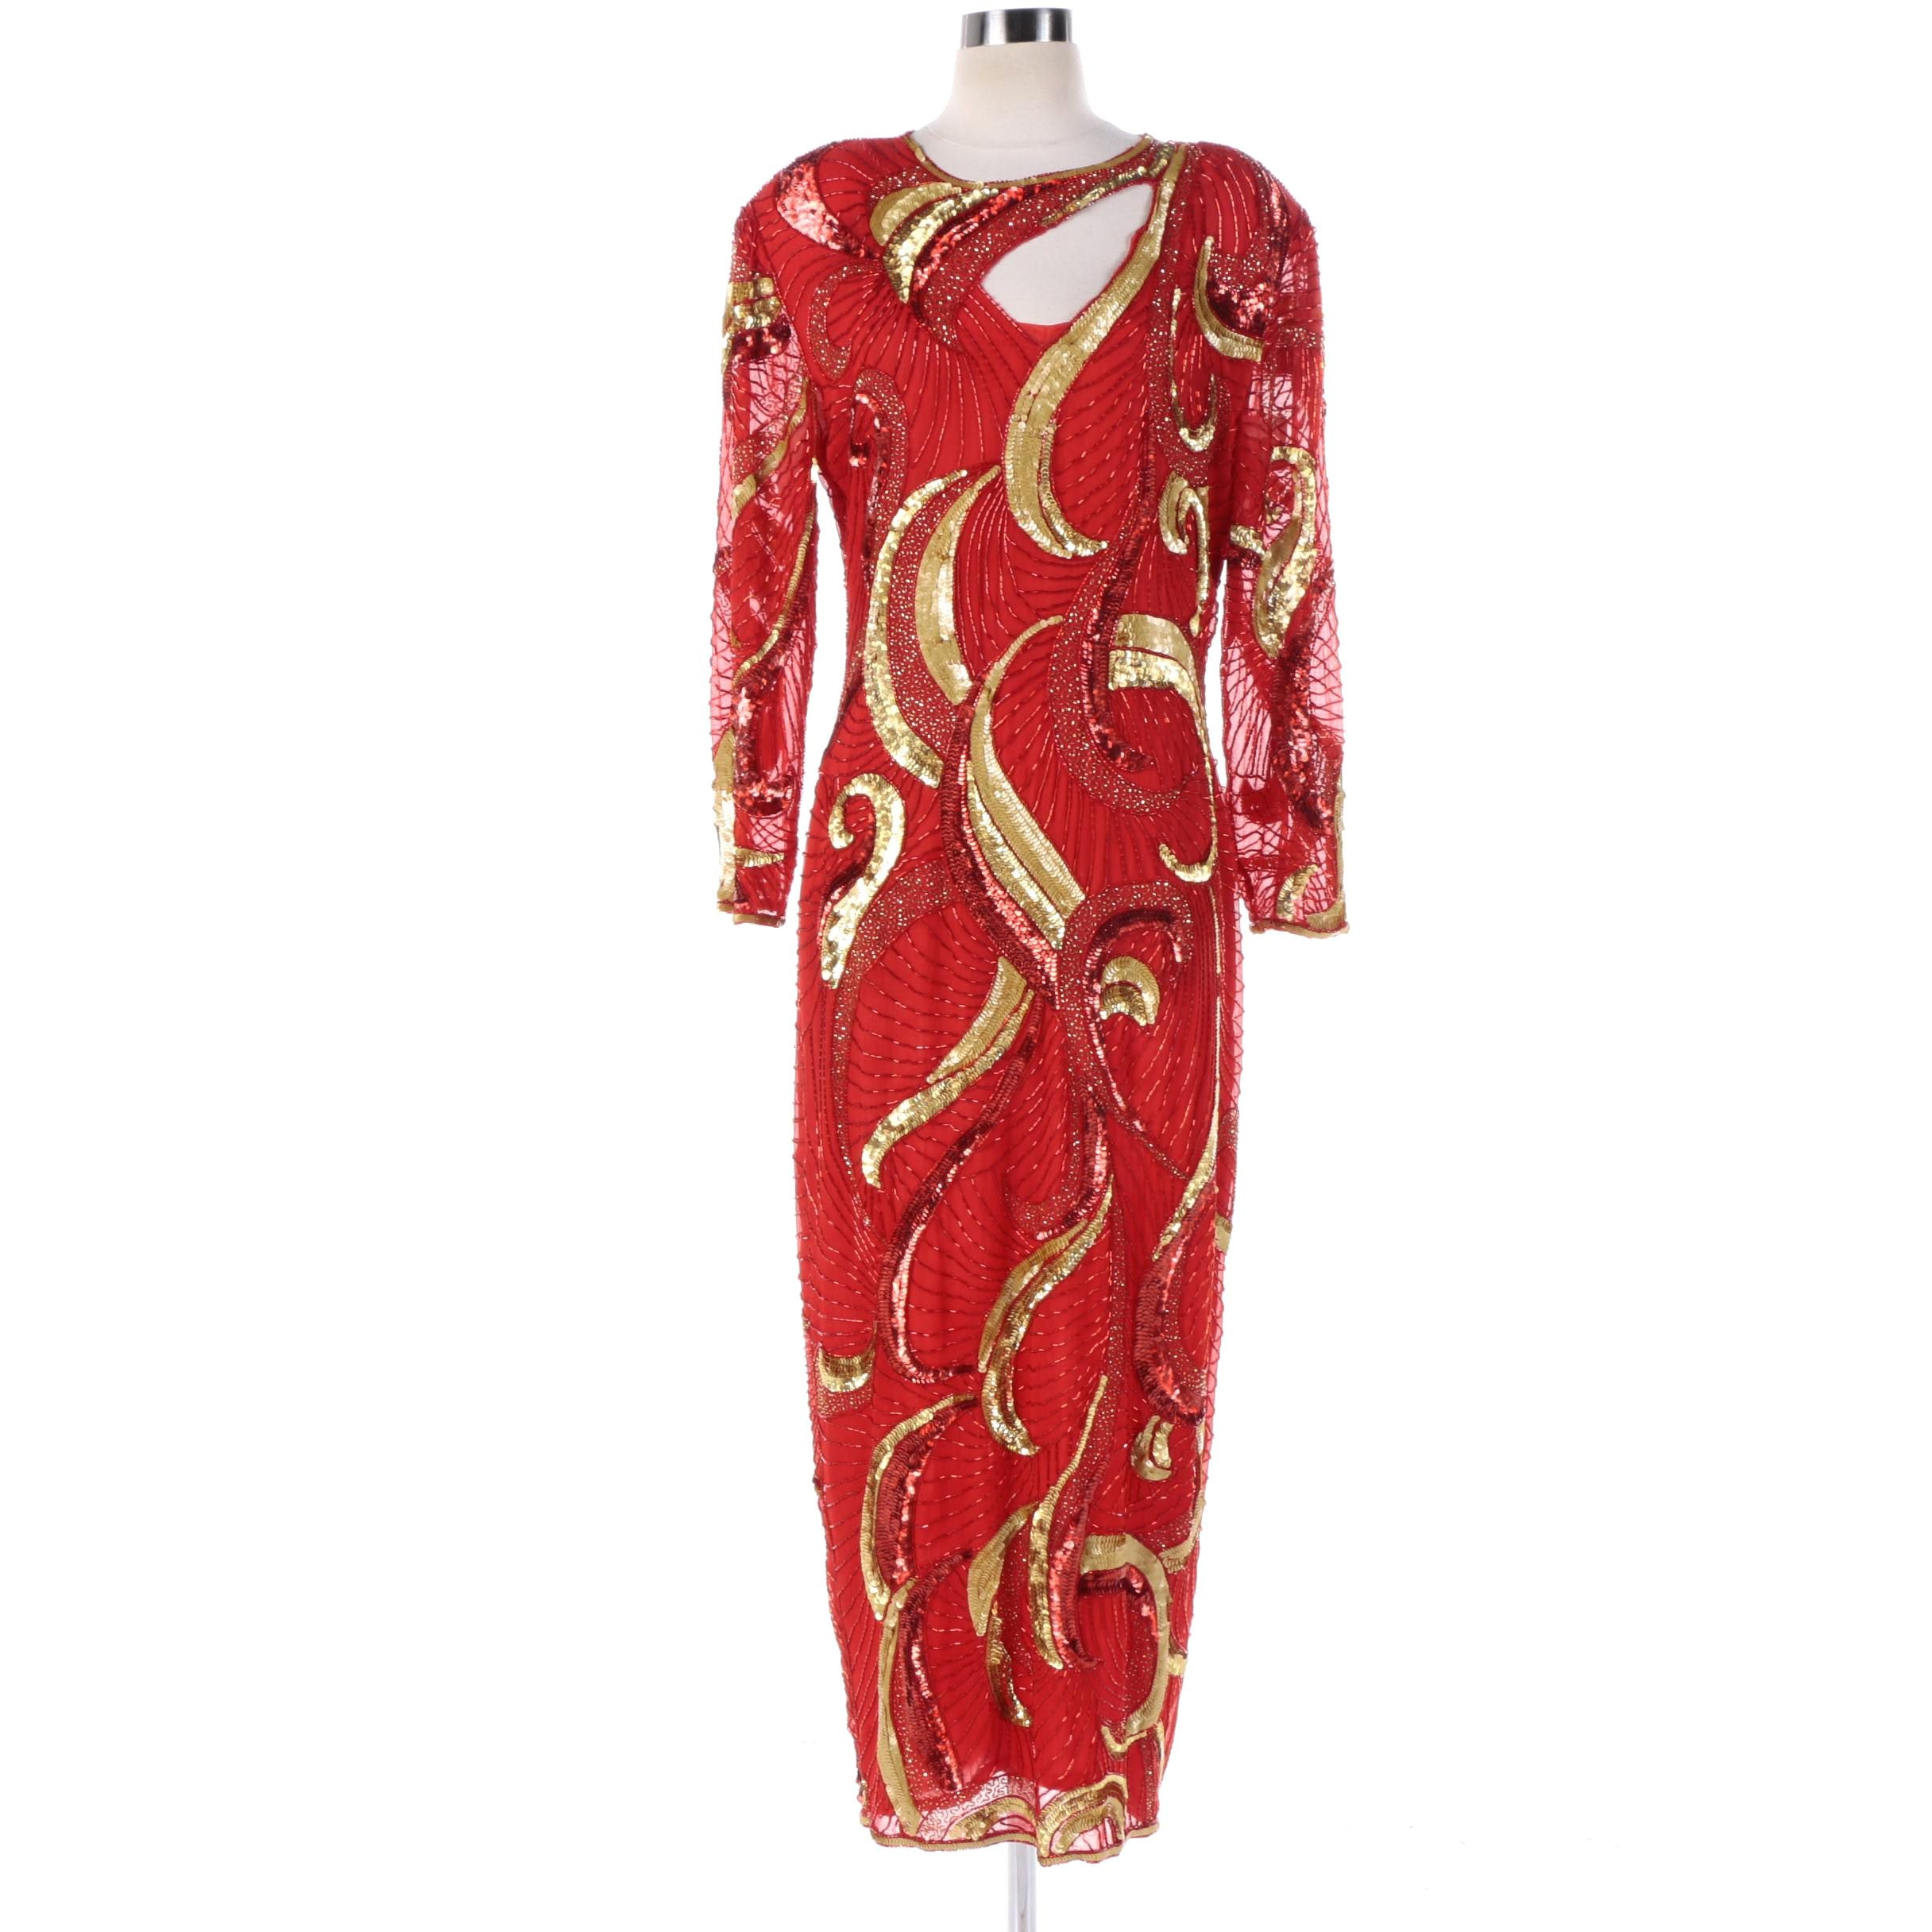 1980s Vintage Jas Jas Designs Red Silk Fully Sequined and Beaded Evening Dress